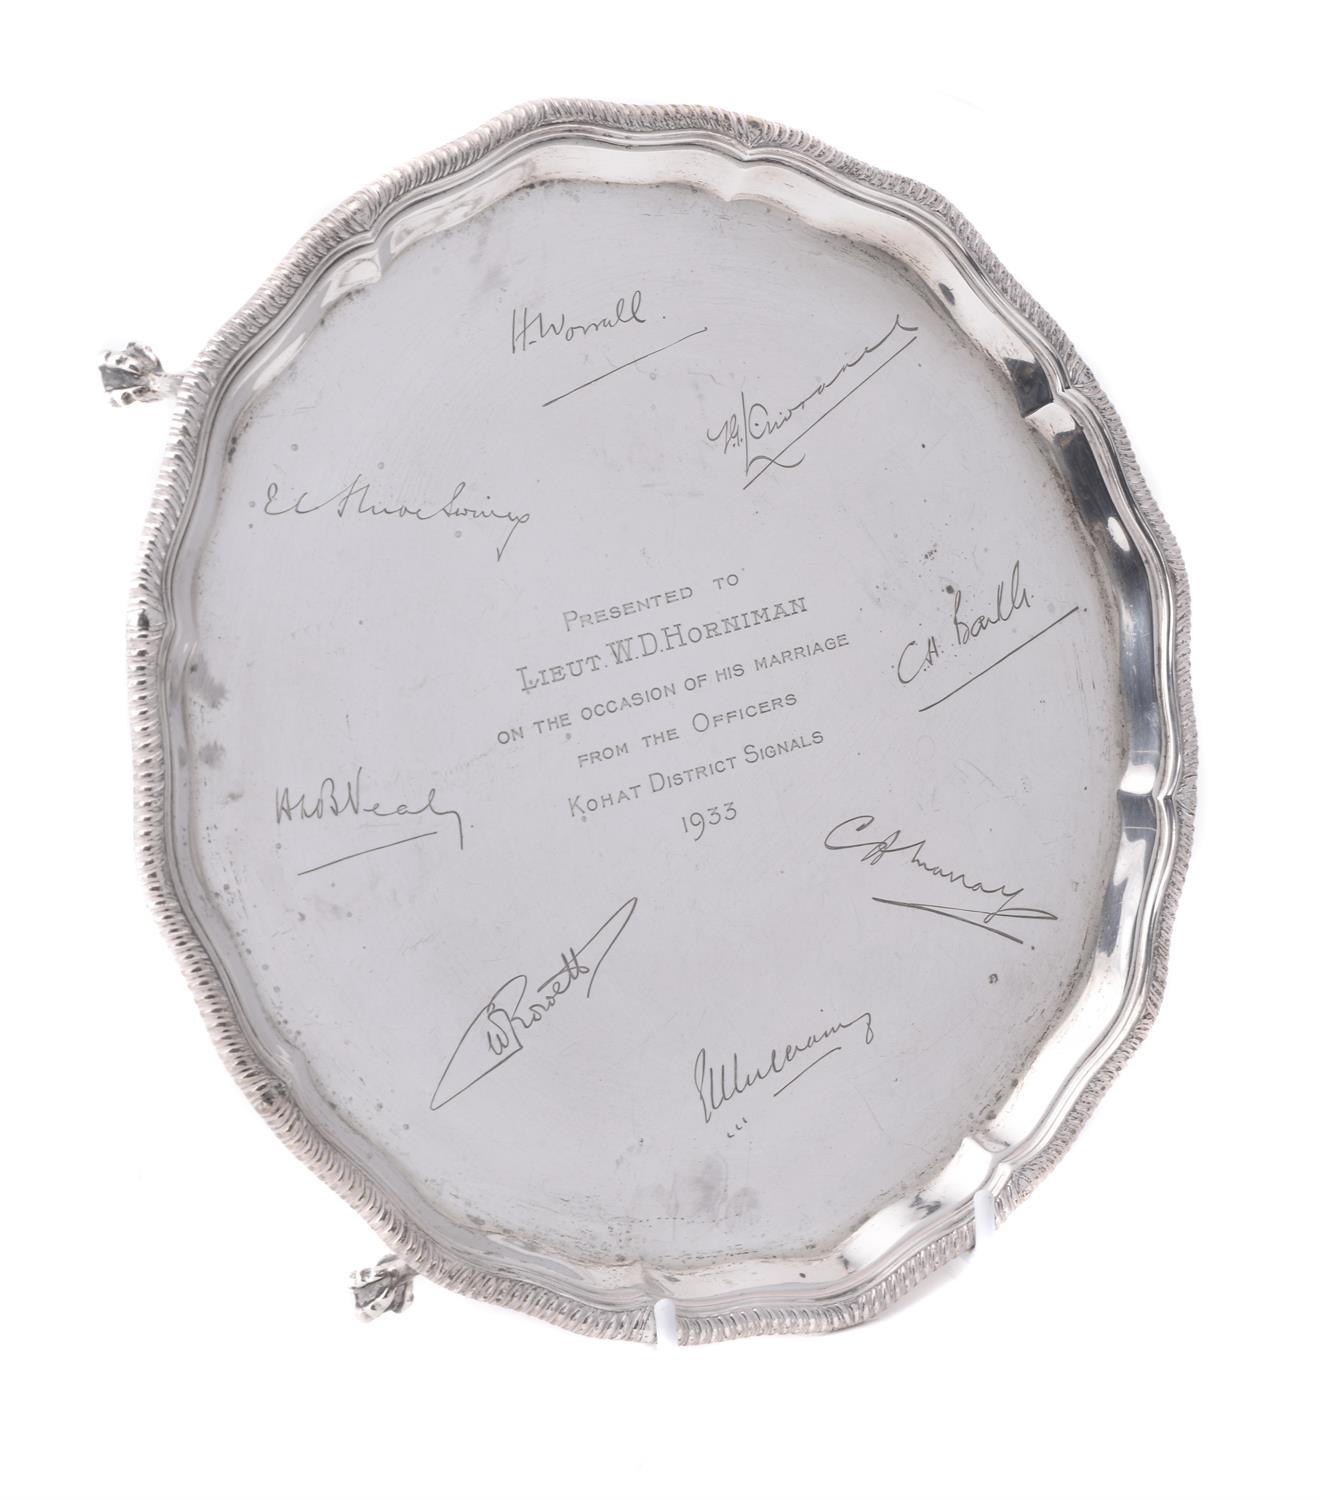 Lot 66 - A silver shaped circular salver by Goldsmiths & Silversmiths Co. Ltd.